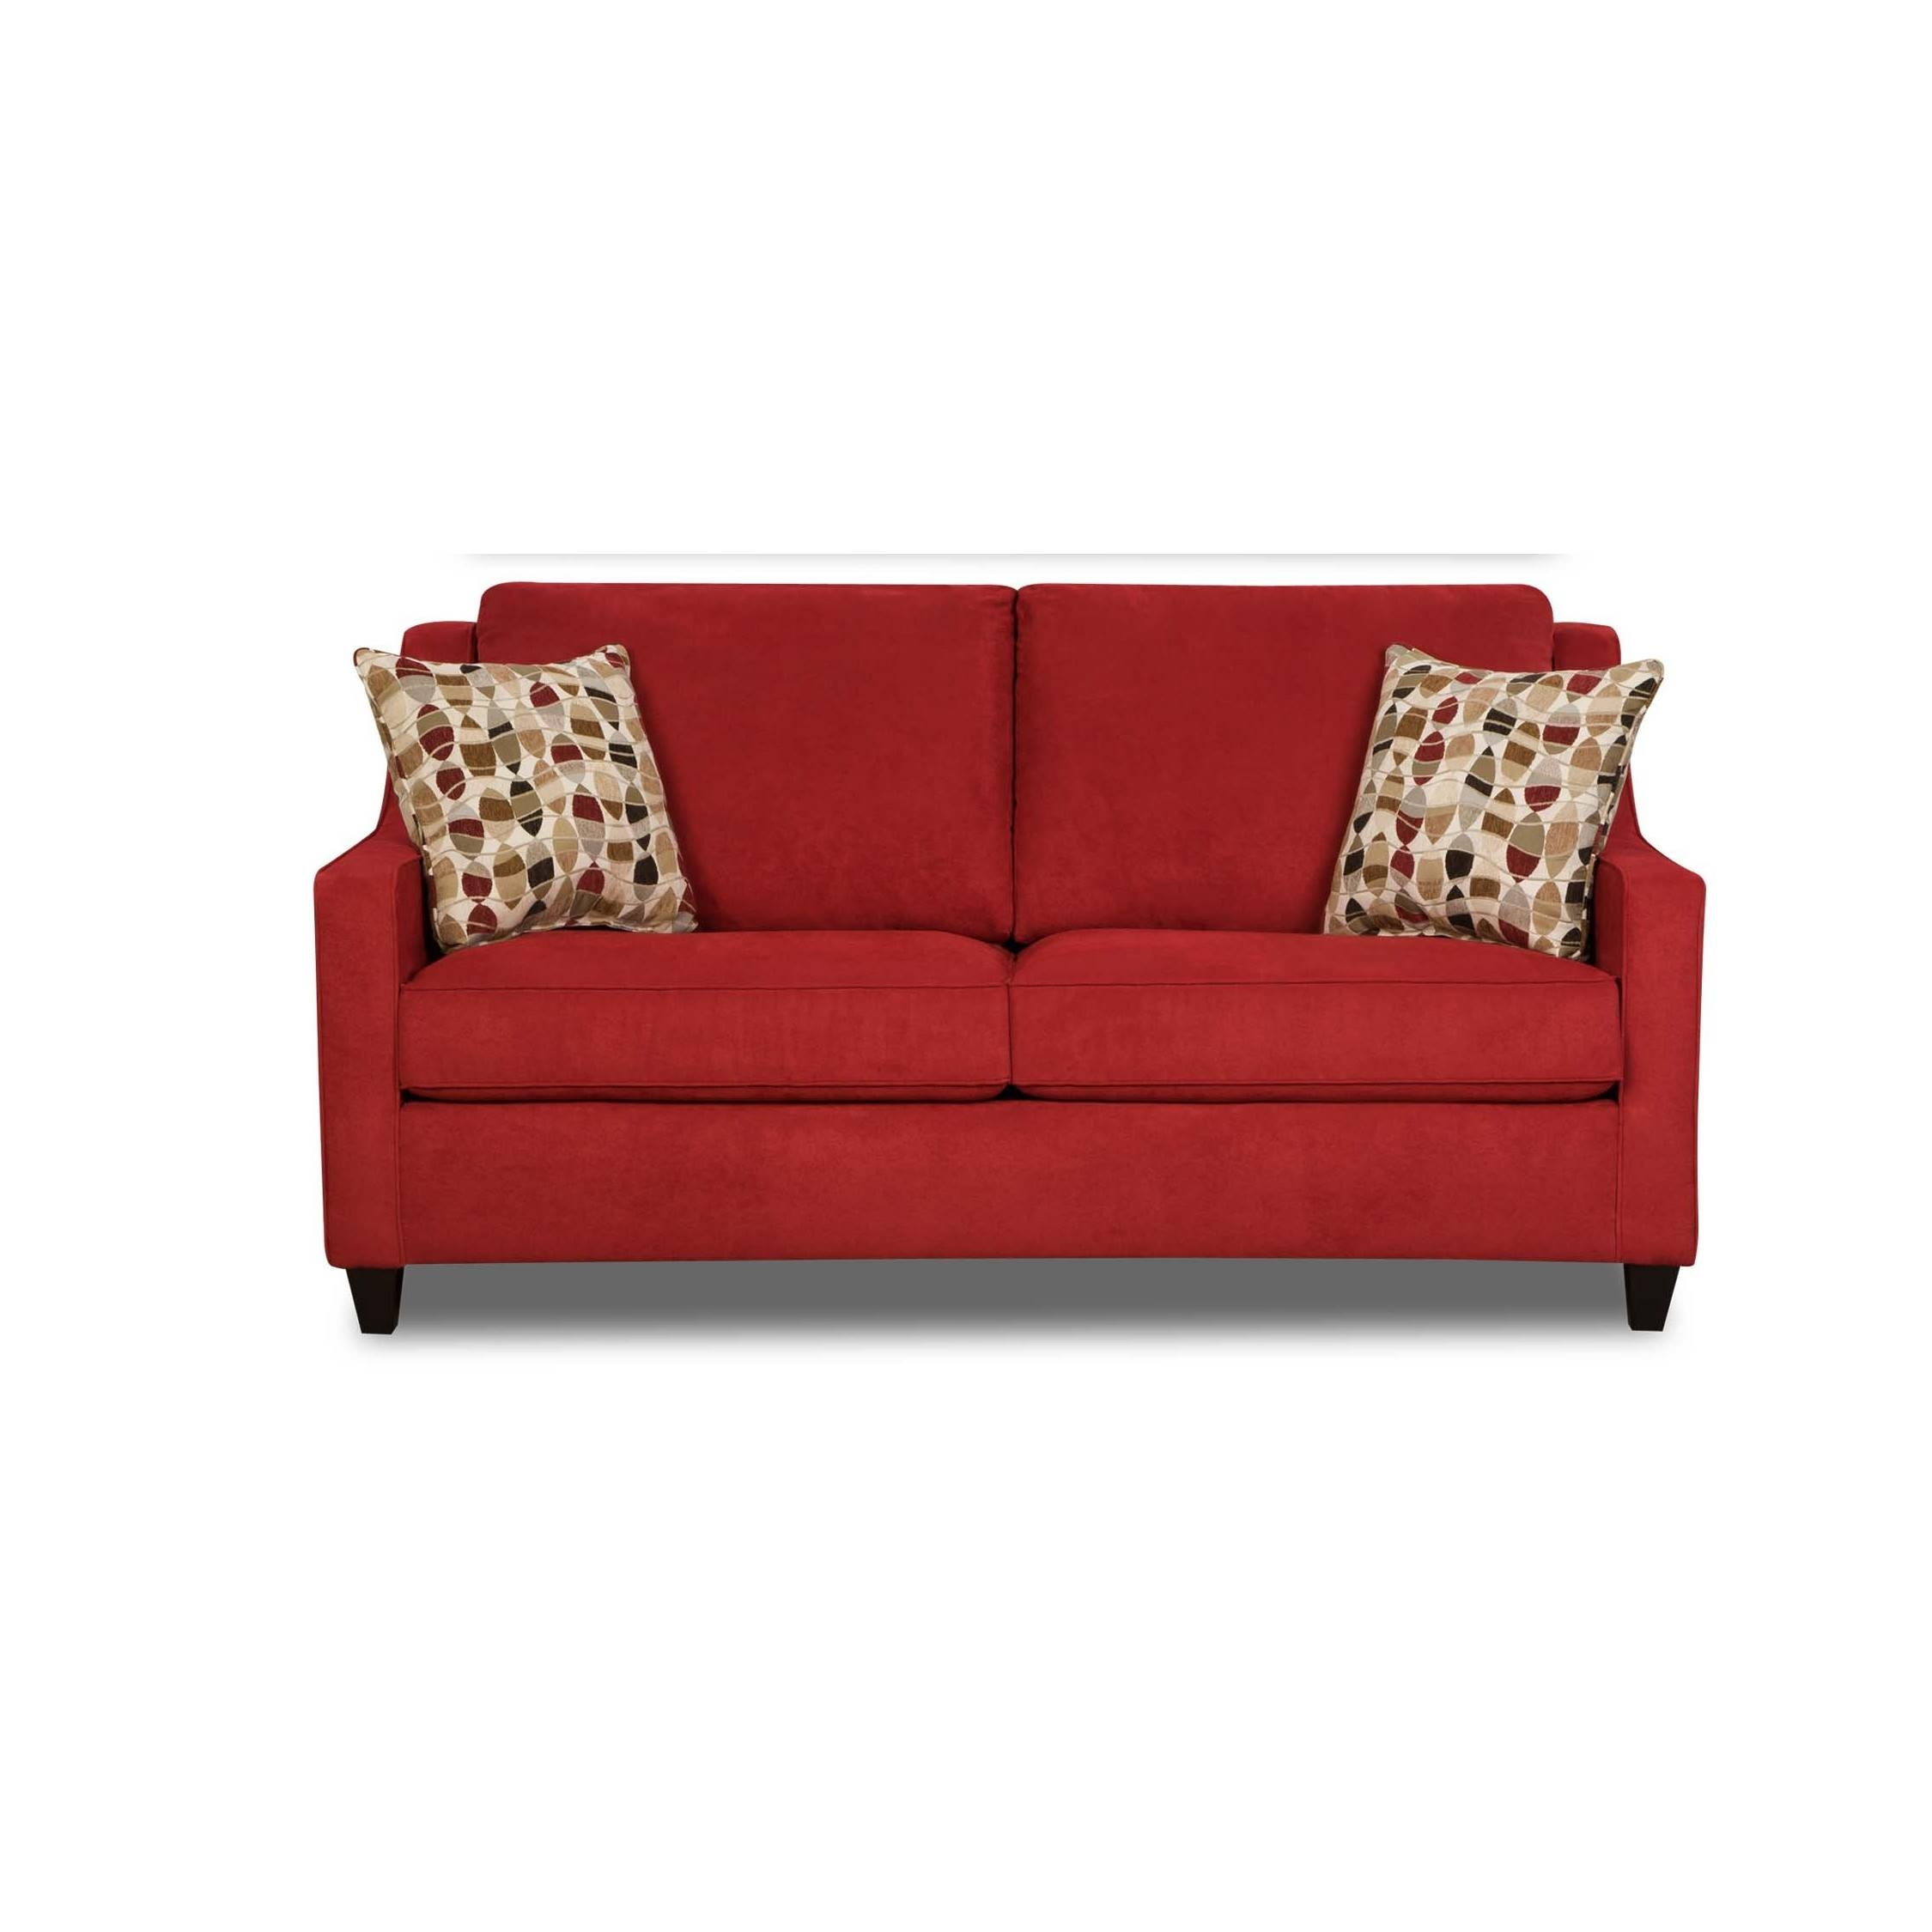 30 s Red Sleeper Sofa